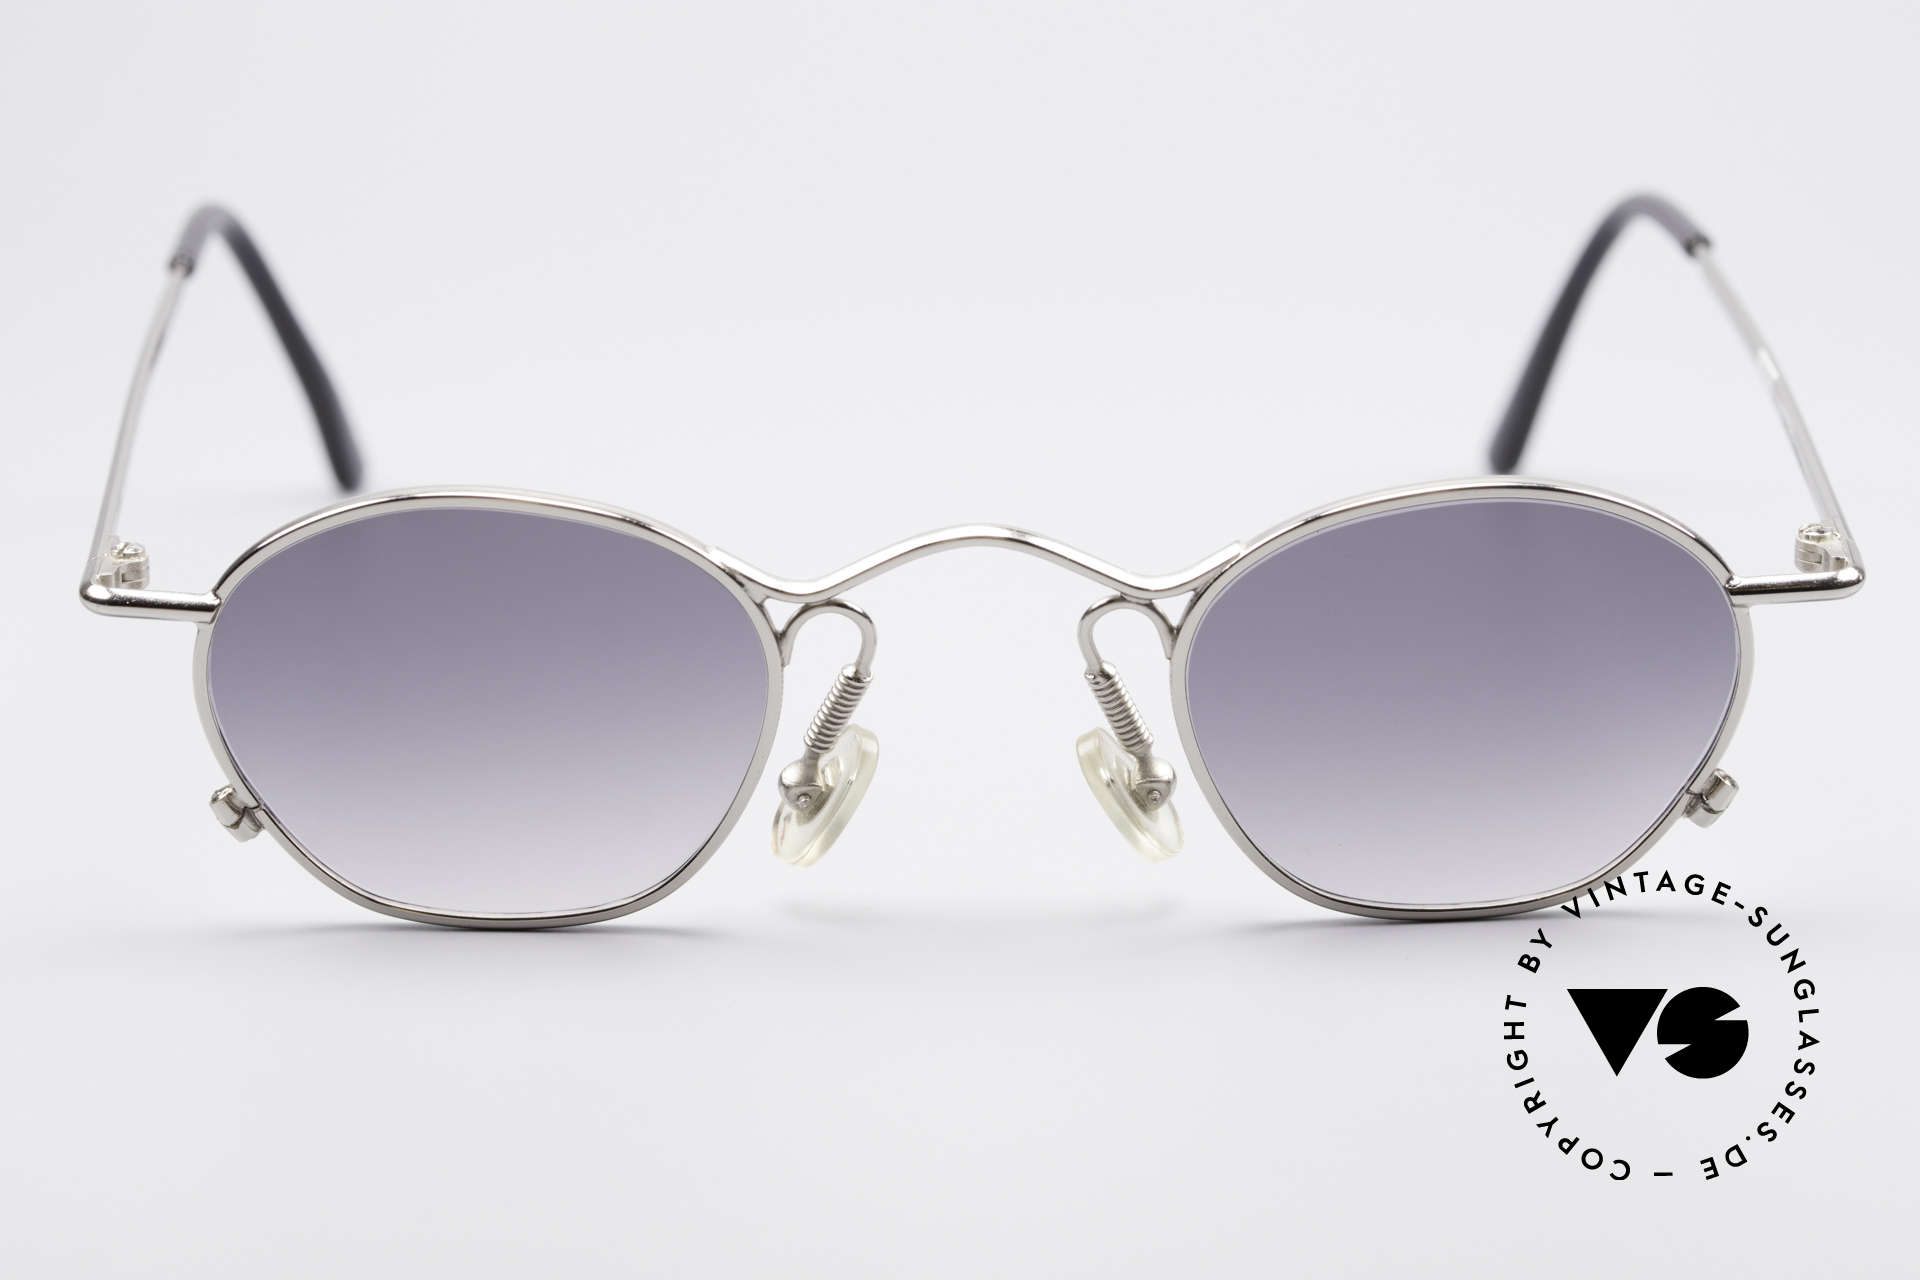 IDC 101 True Vintage No Retro Shades, NO RETRO frame, but an app. 25 years old Original!, Made for Men and Women